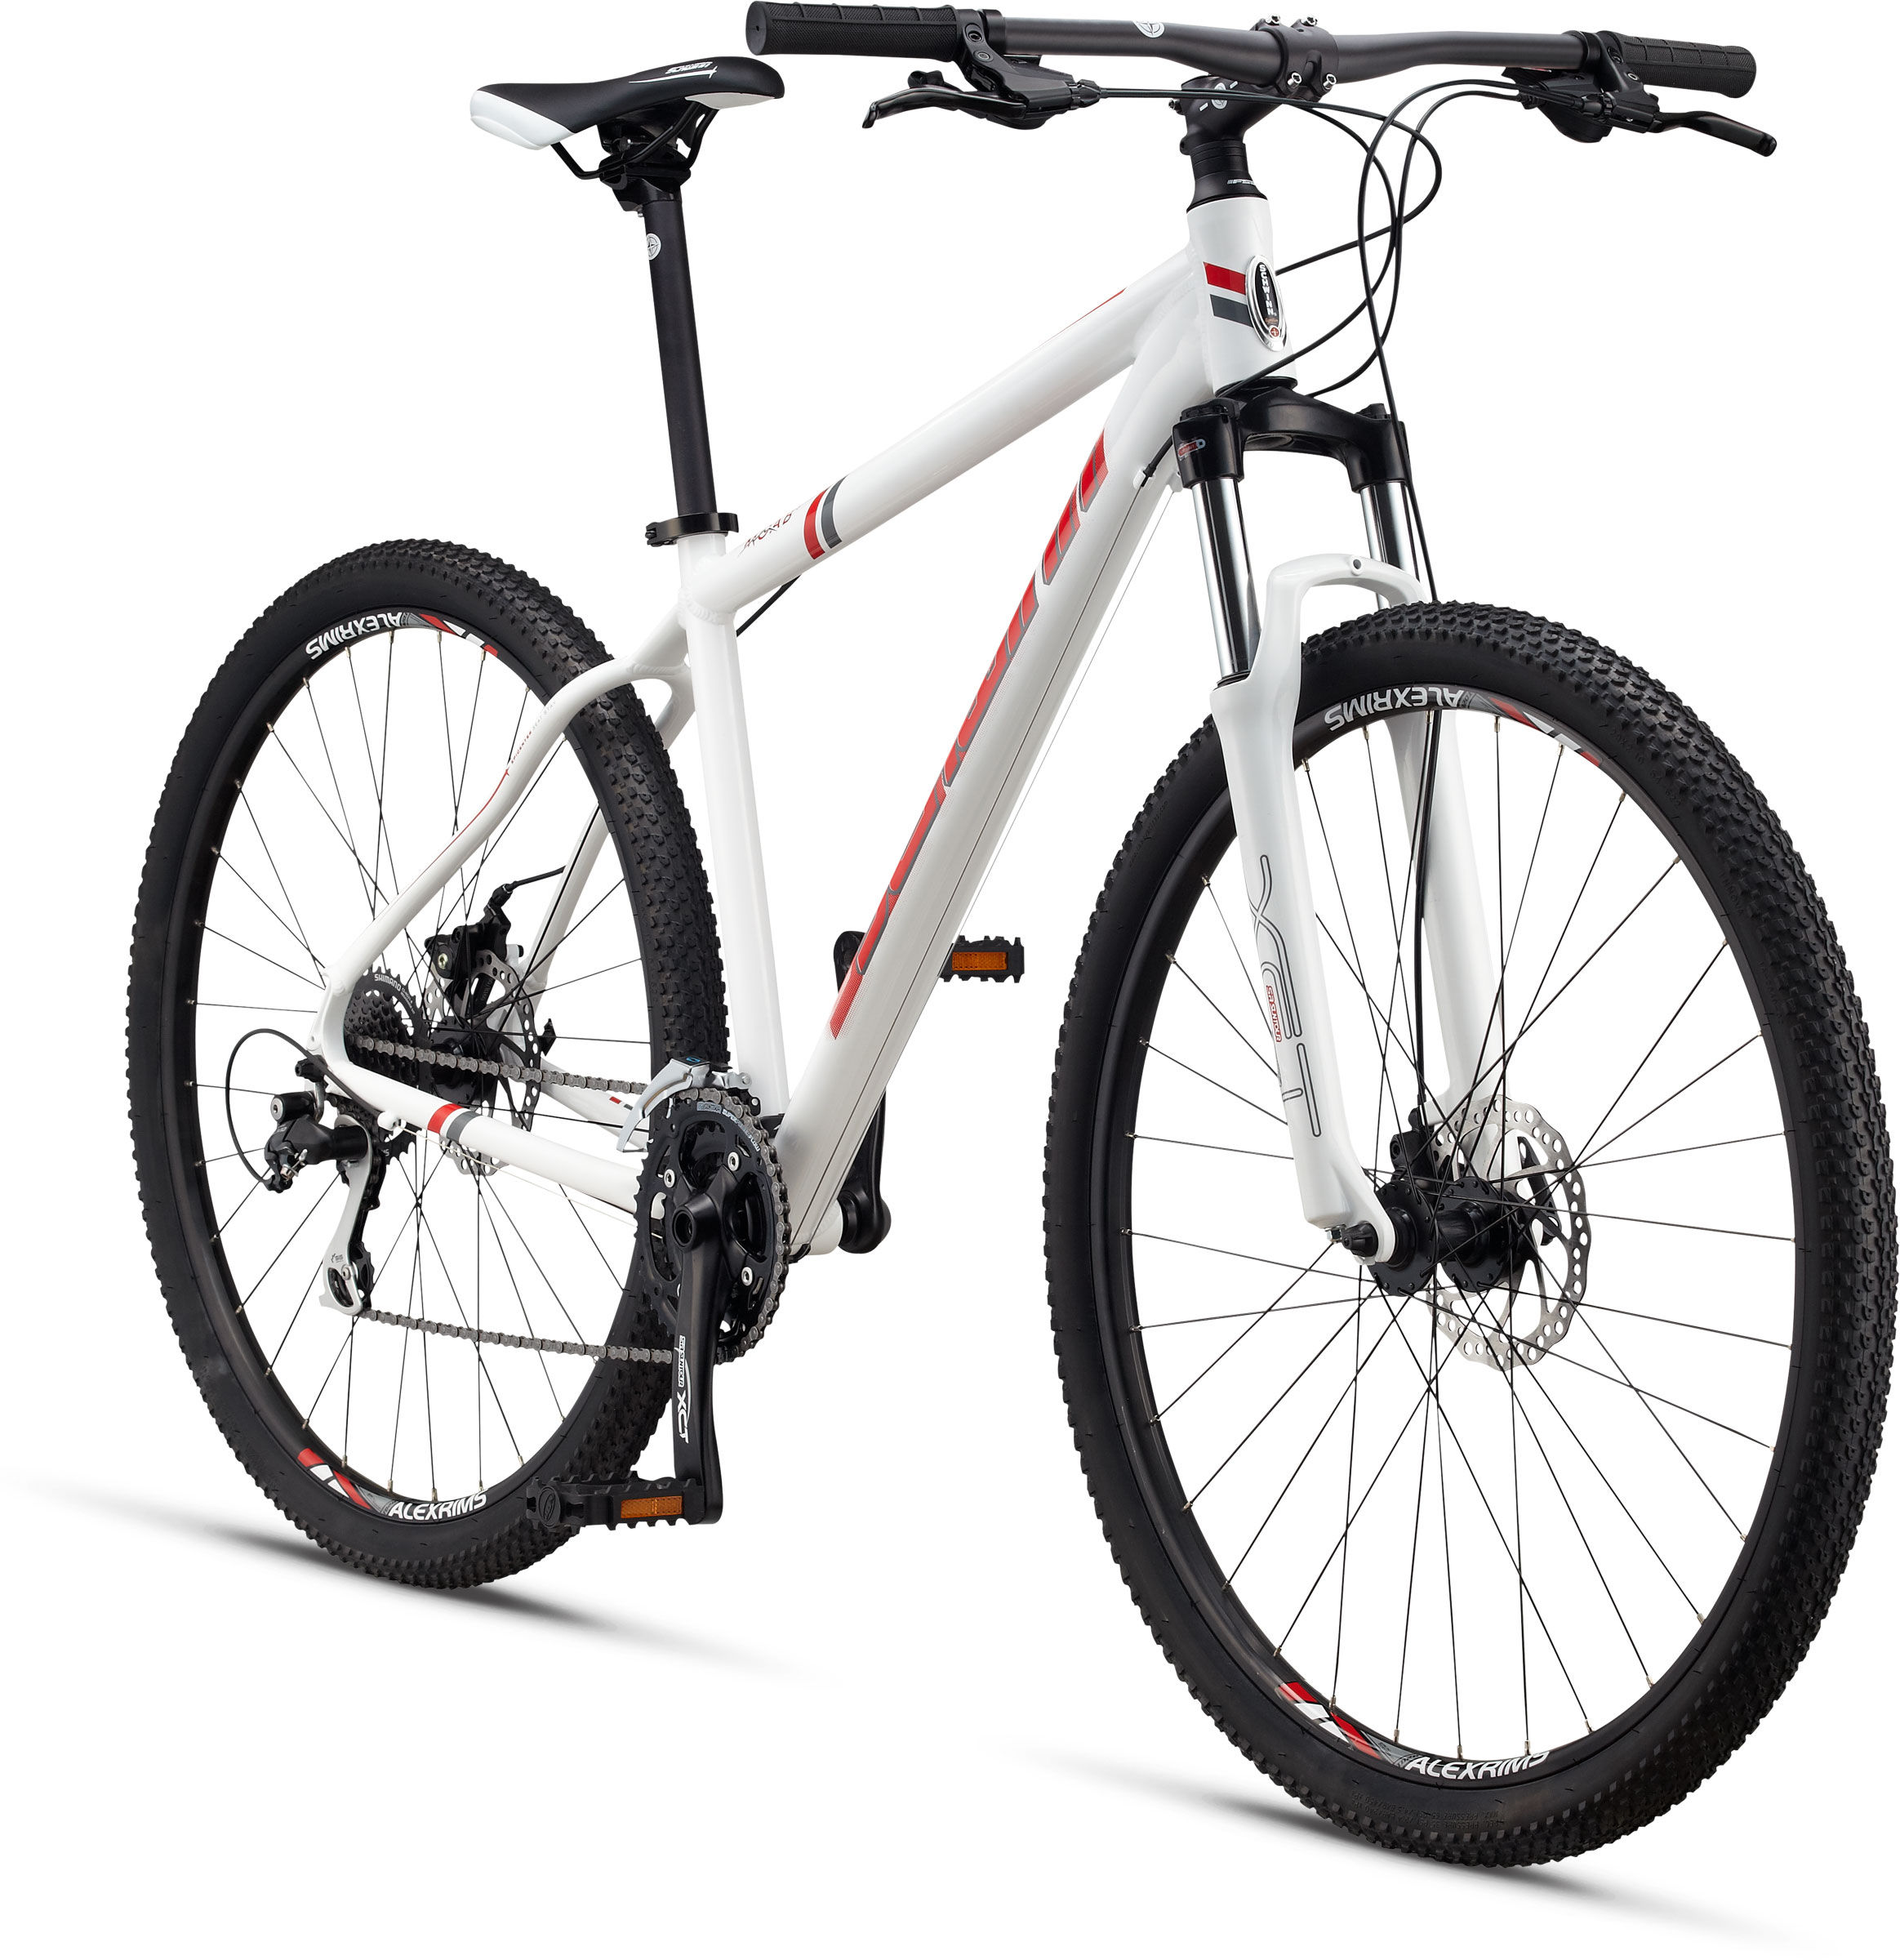 Schwinn Moab 3 - Bikes, Parts, Accessories and Clothing